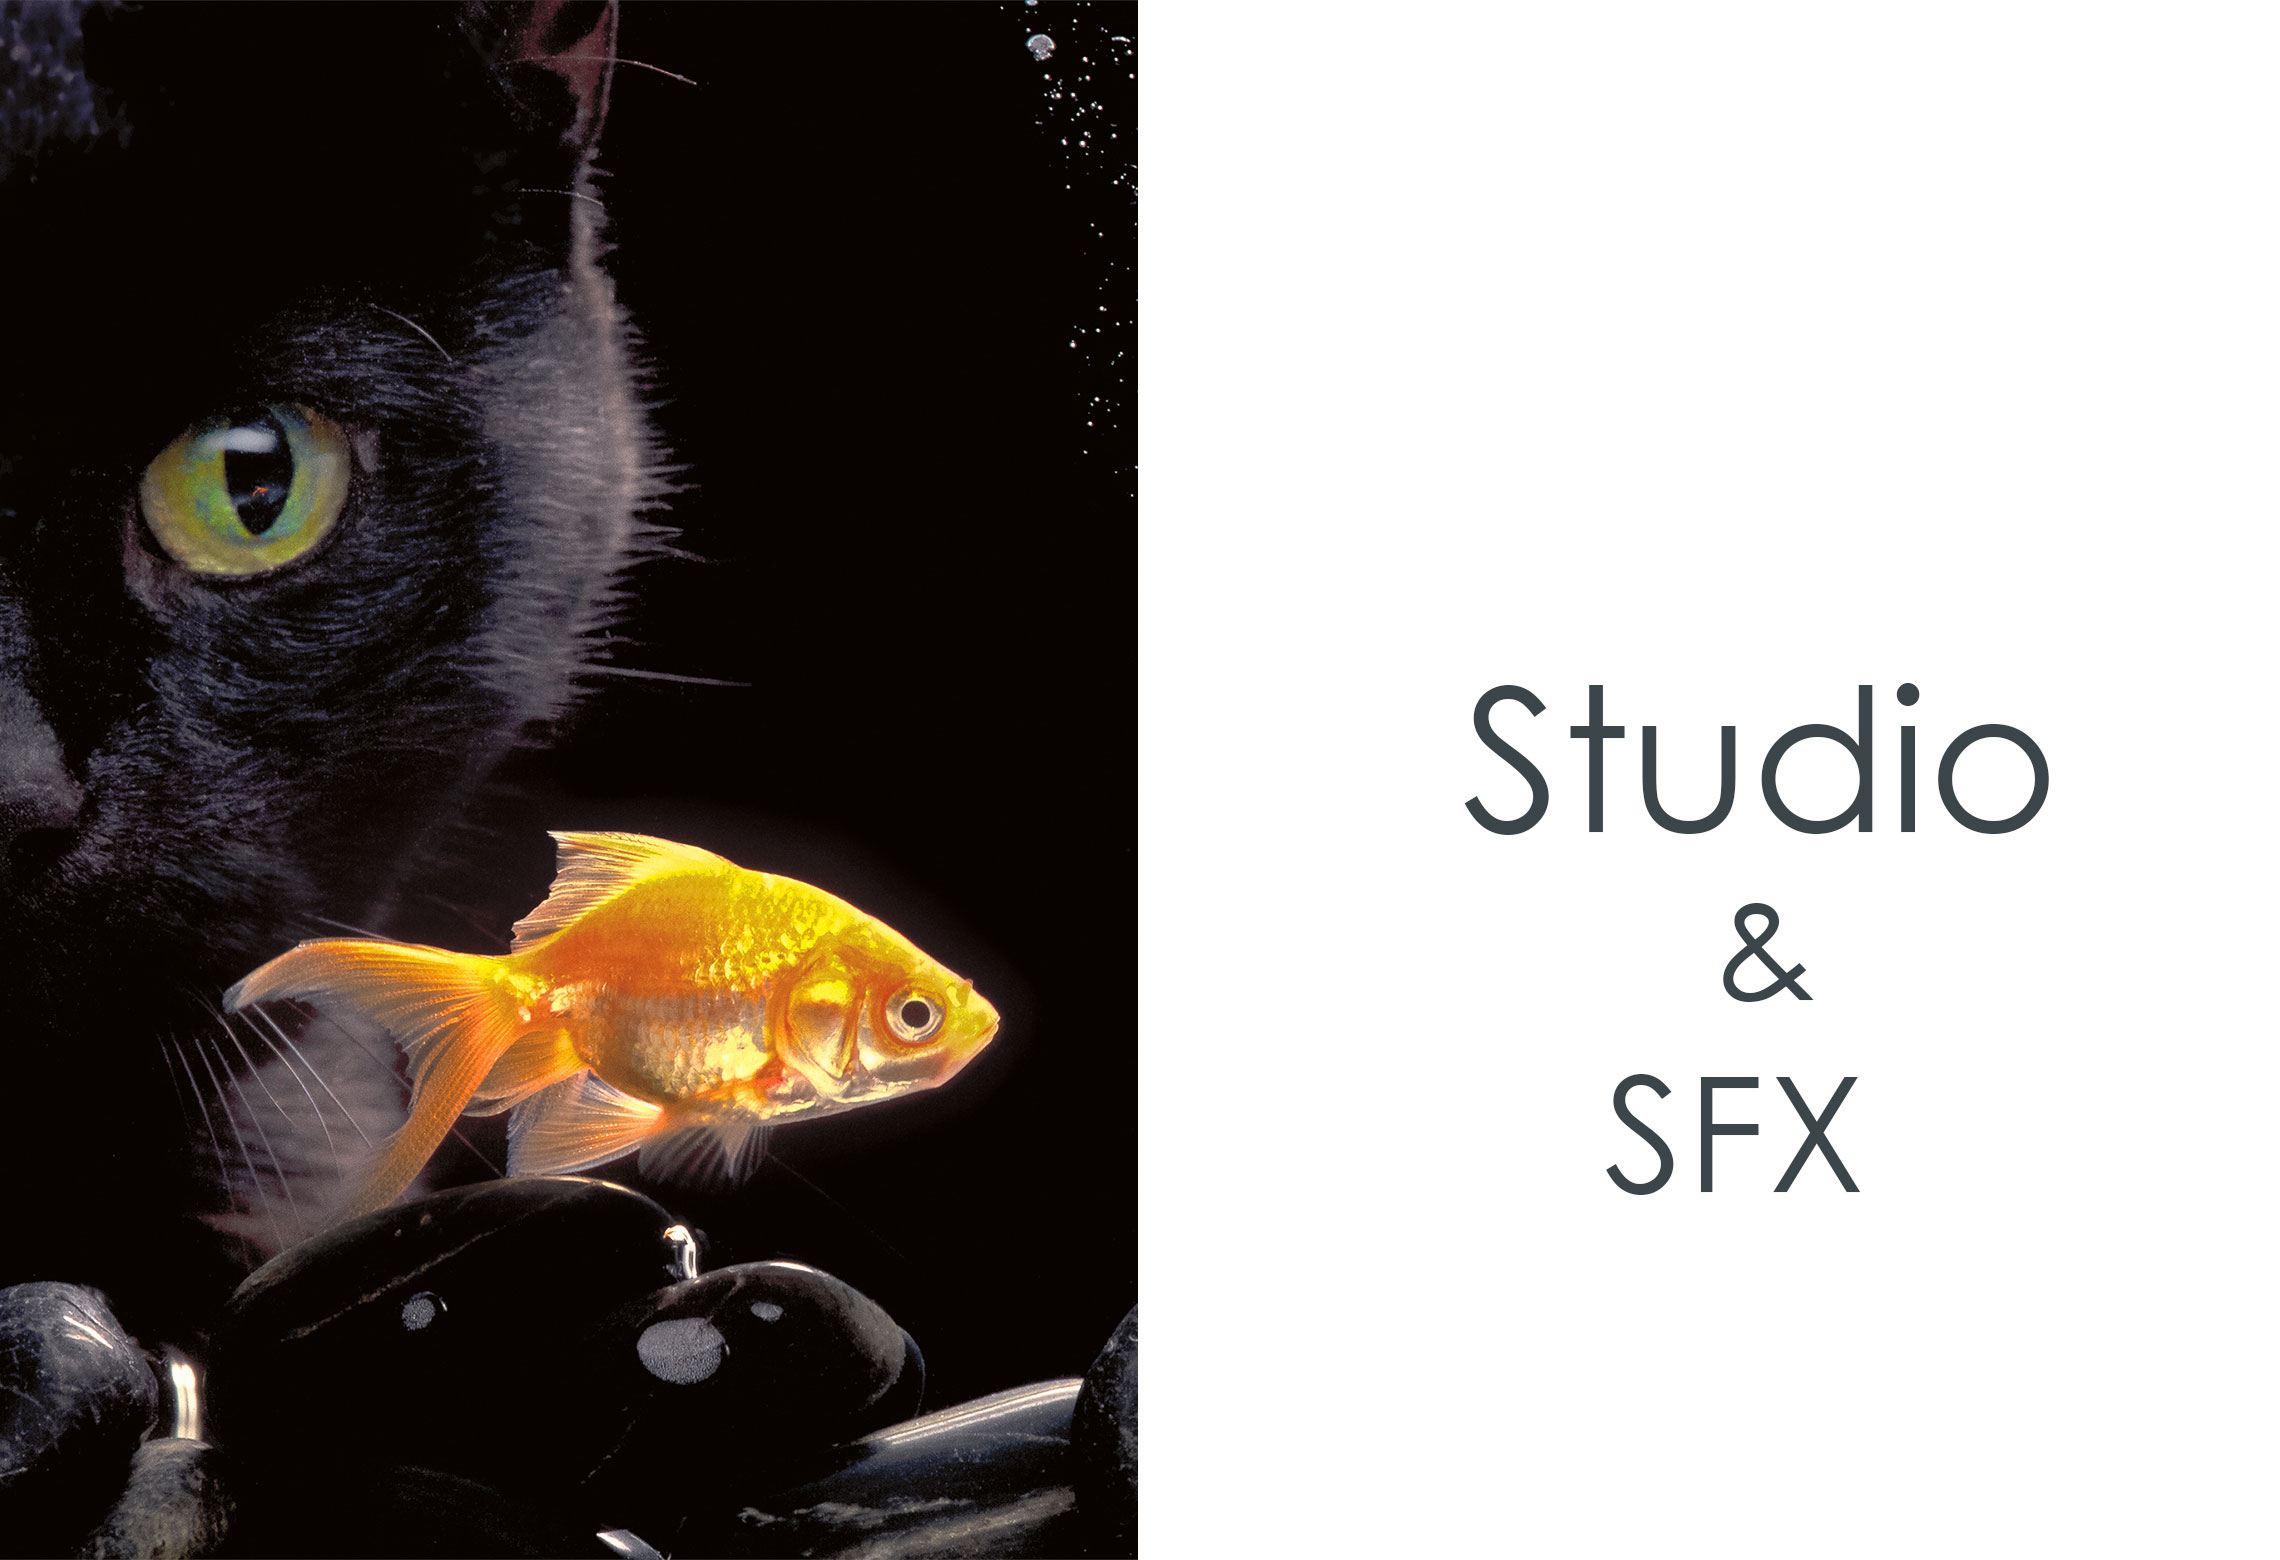 Studio & Special Effects (SFX)